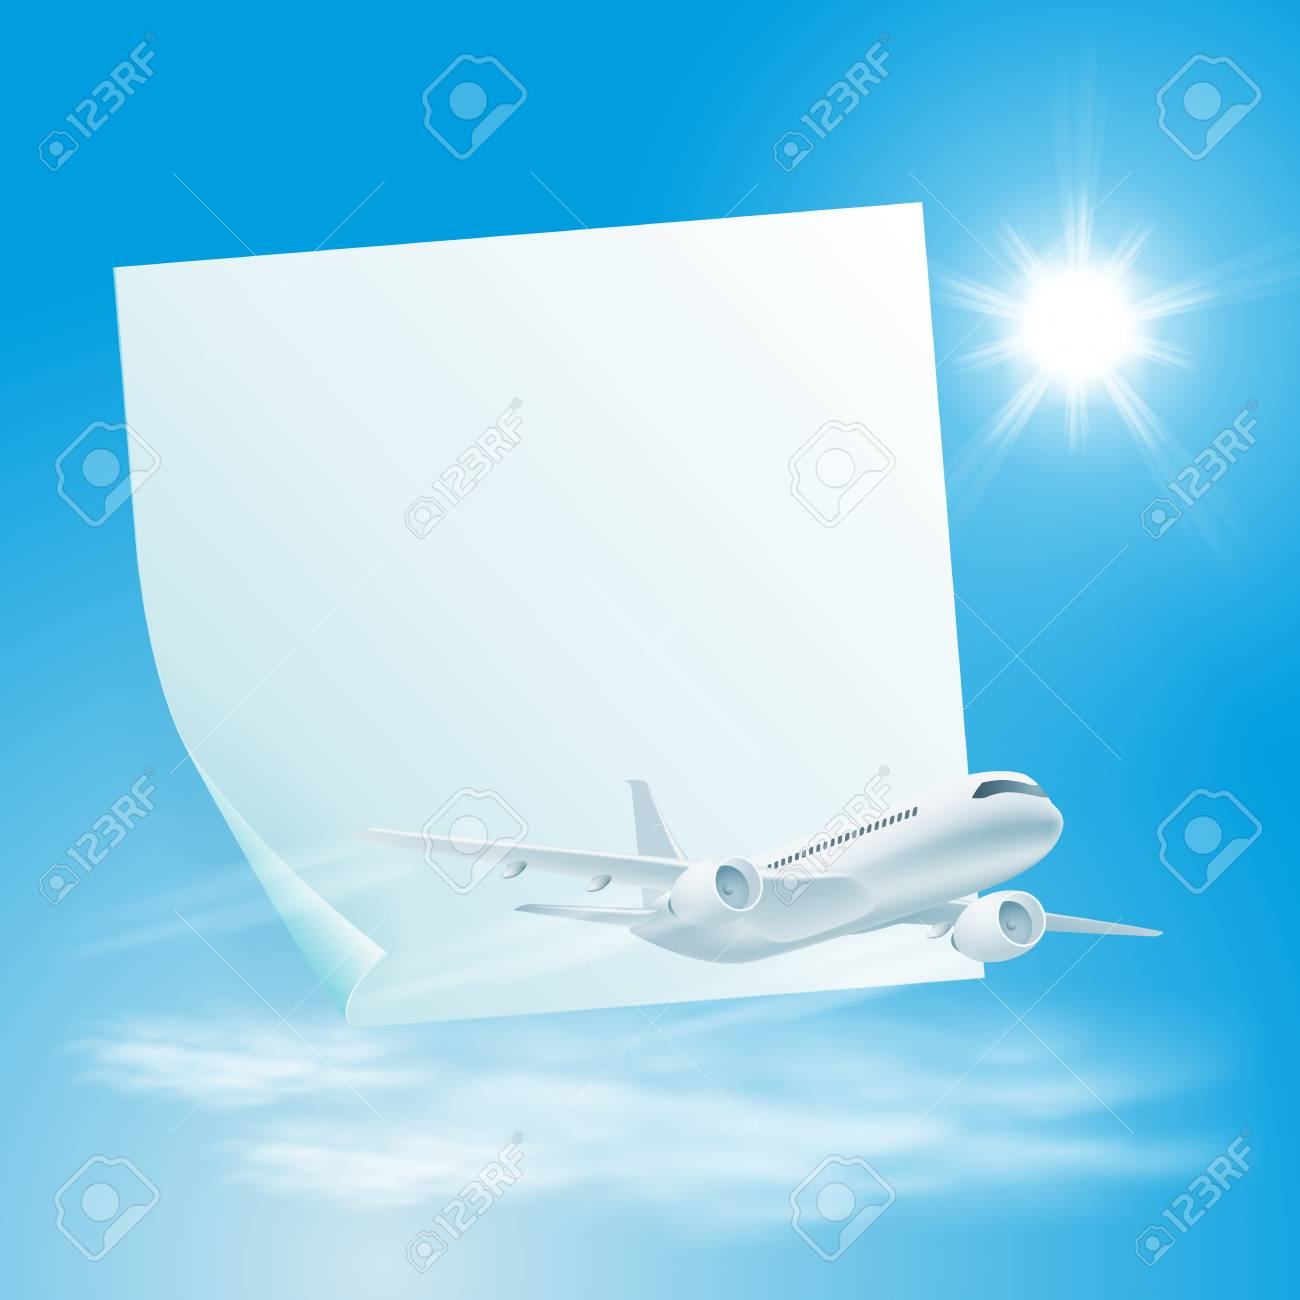 Illustration of airplane in the sky with sticker for your text